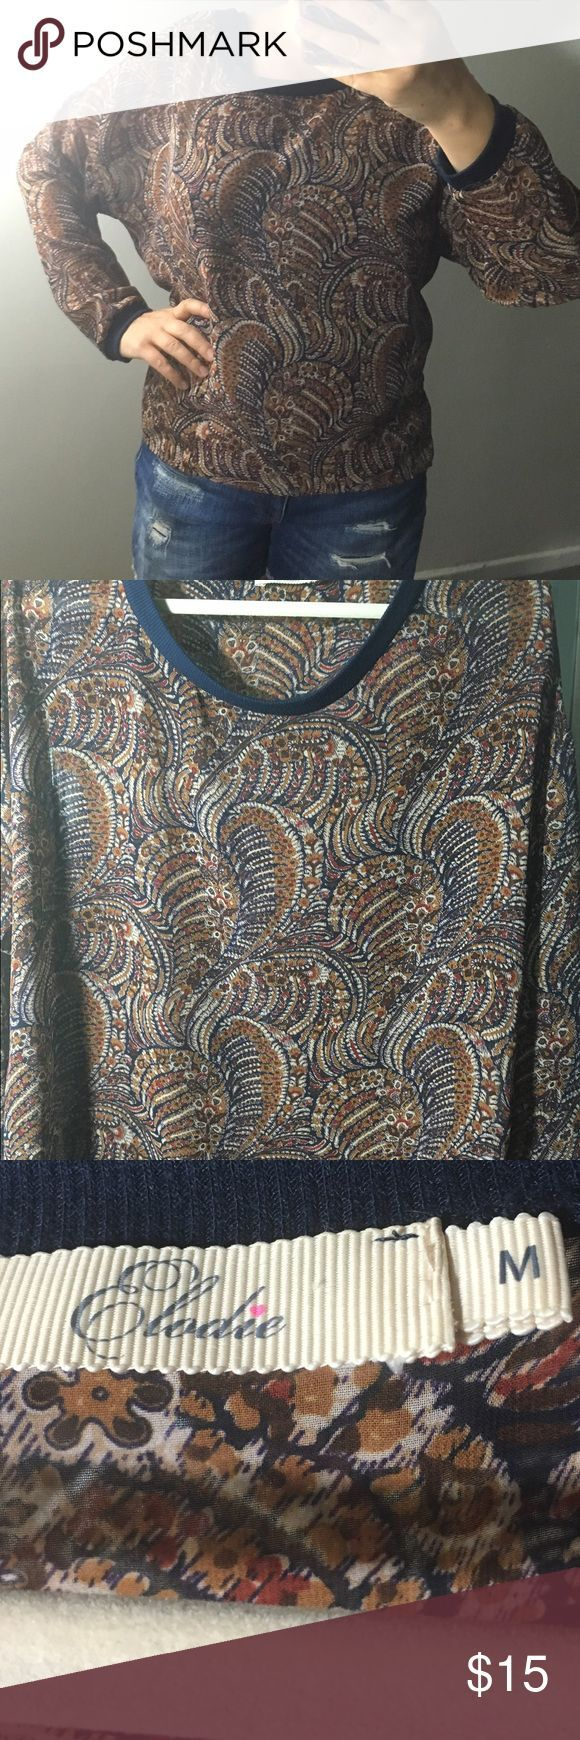 Elodie sheer blouse Beautiful pattern and blue and brown colors. Sheer blouse. EUC. Elodie Tops Blouses - women's business blouses, short blouse, black and white patterned blouse *sponsored https://www.pinterest.com/blouses_blouse/ https://www.pinterest.com/explore/blouses/ https://www.pinterest.com/blouses_blouse/white-lace-blouse/ http://www.landsend.com/shop/womens-shirts-blouses-blouses/-/N-fxw?brandCode=classic